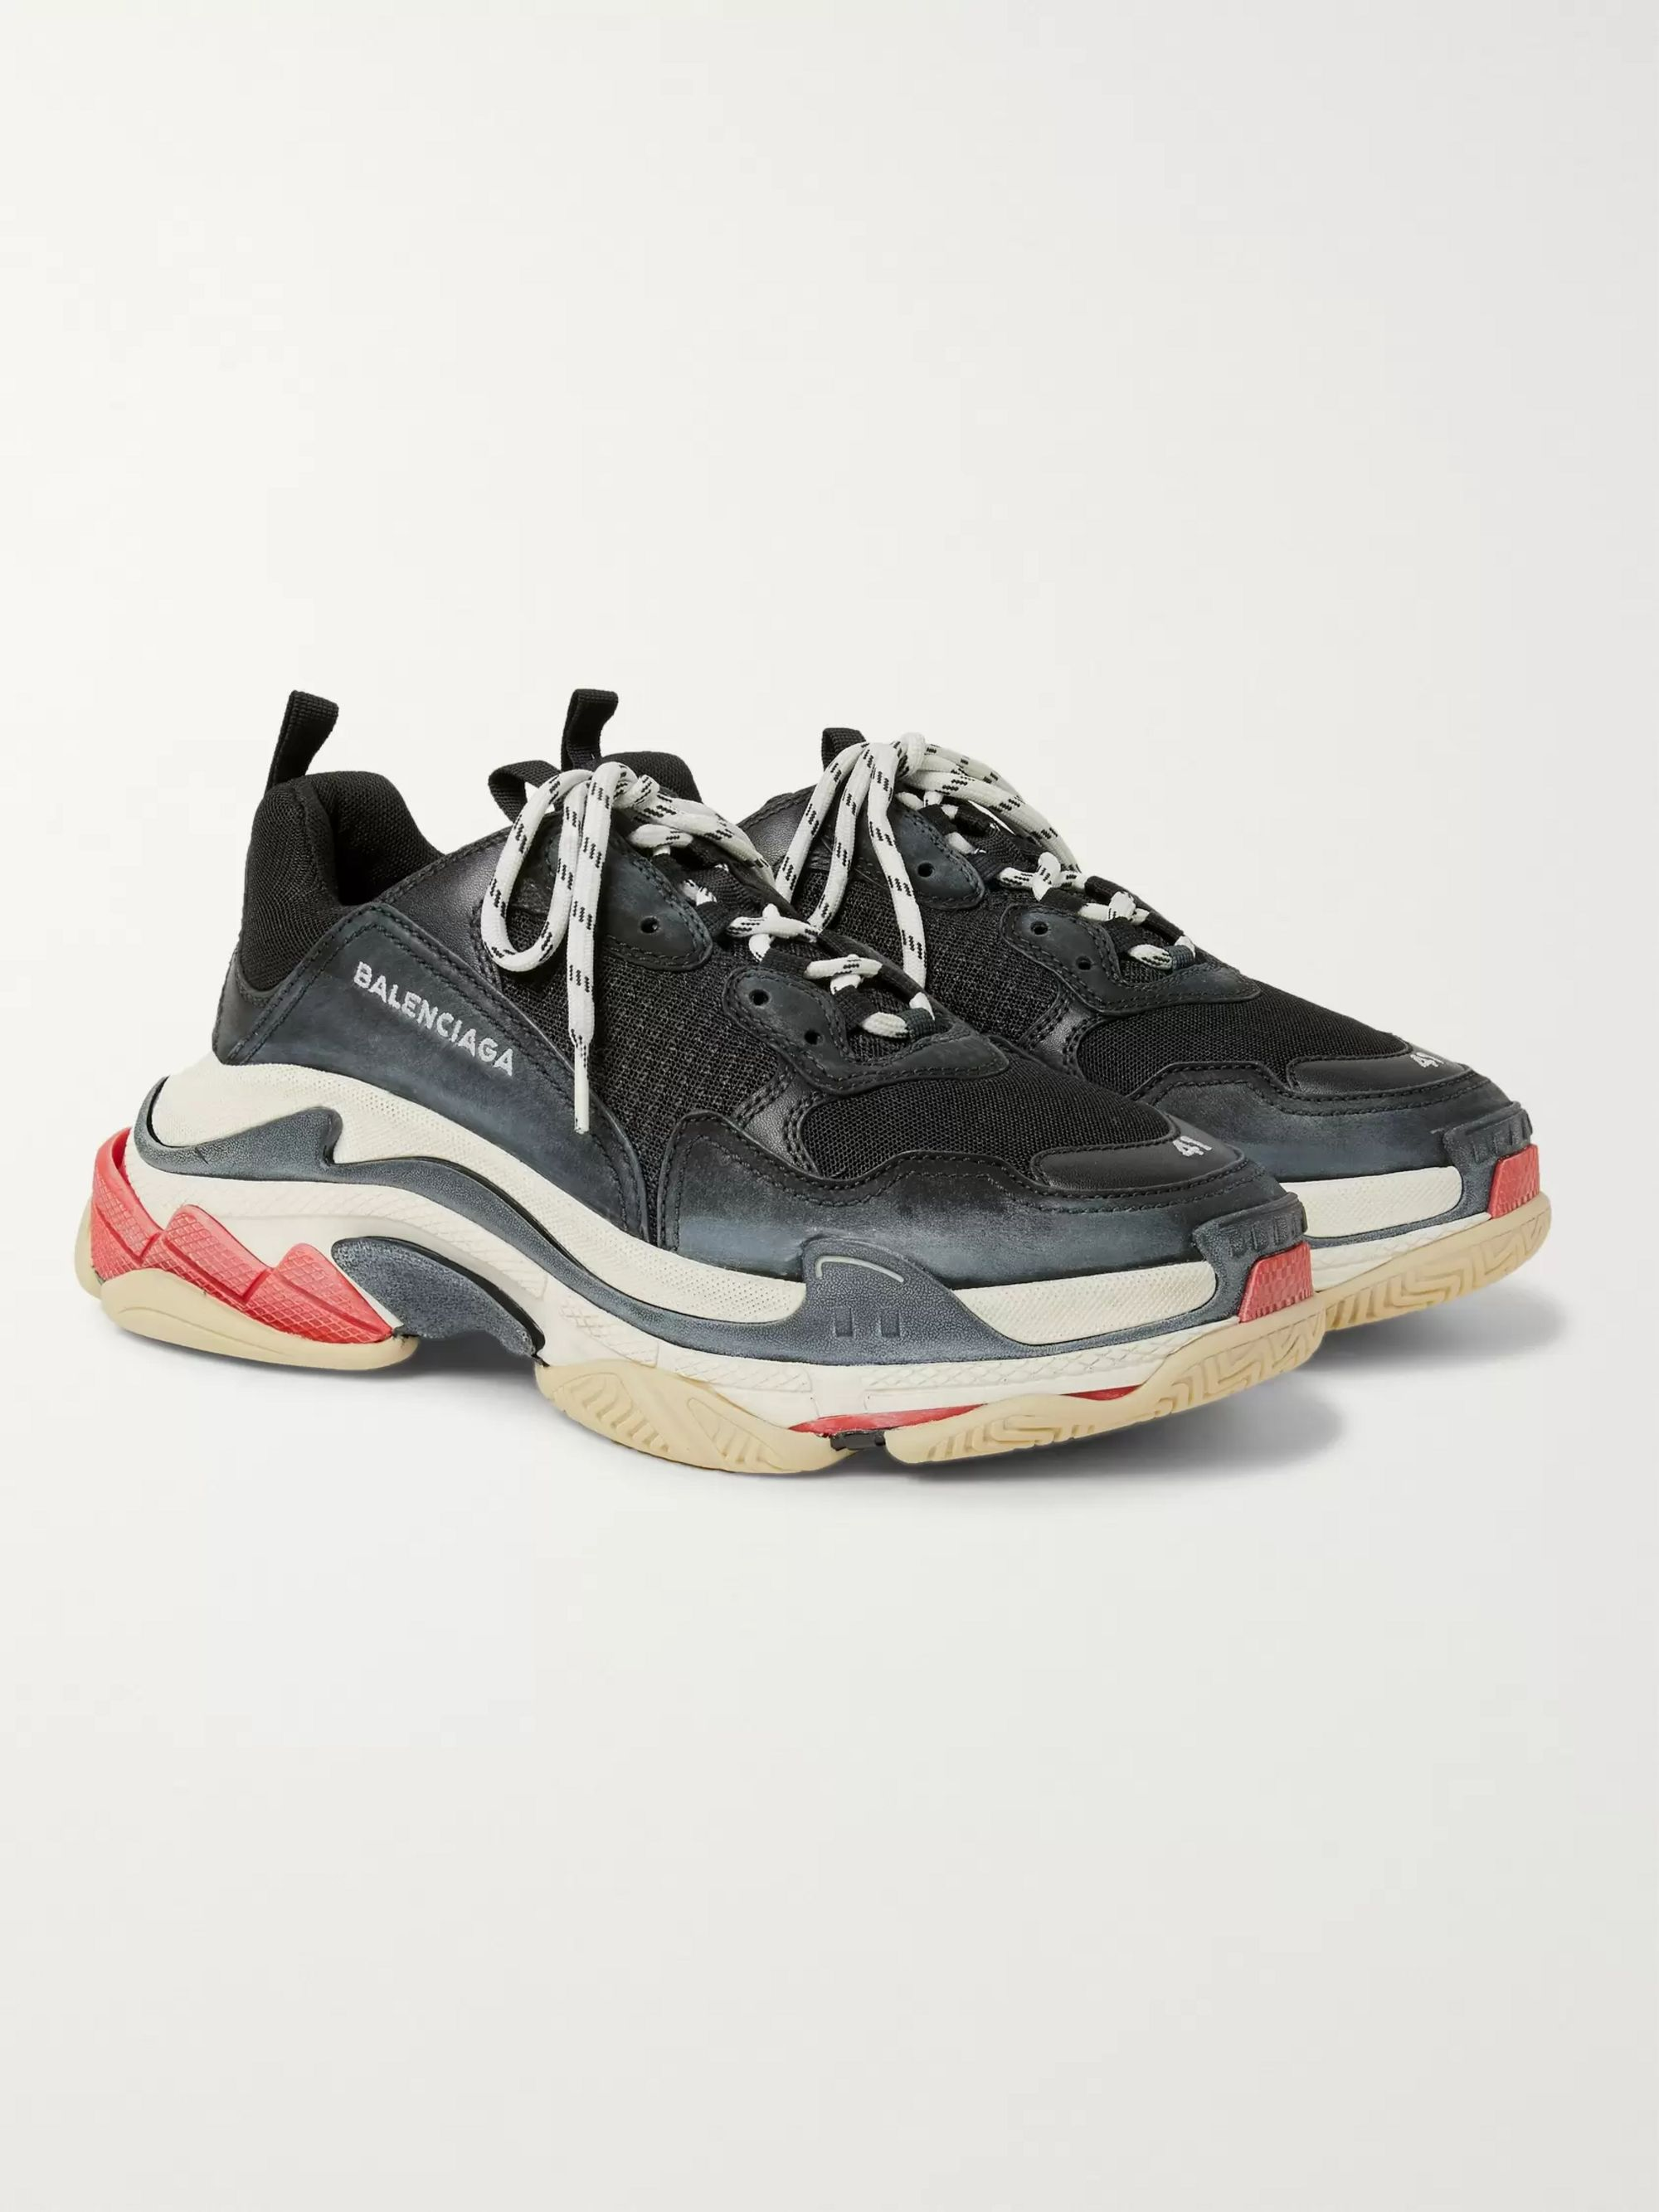 Balenciaga Triple S Black Burgundy 182342M237001 StockX